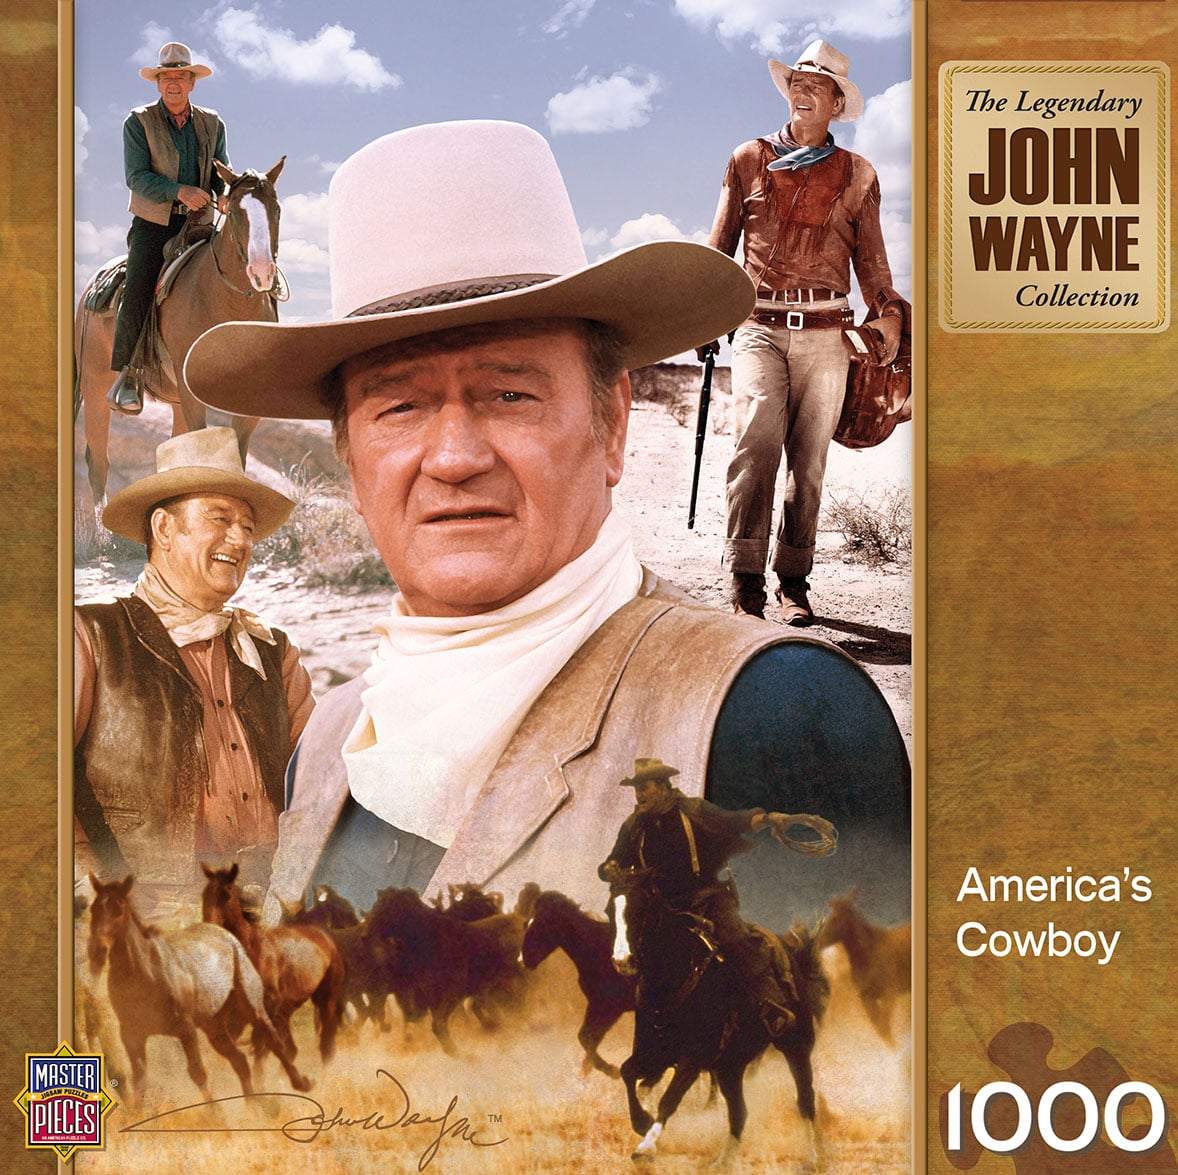 Puzzle - America's Cowboy John Wayne Puzzle - 712384 | Leanin' Tree